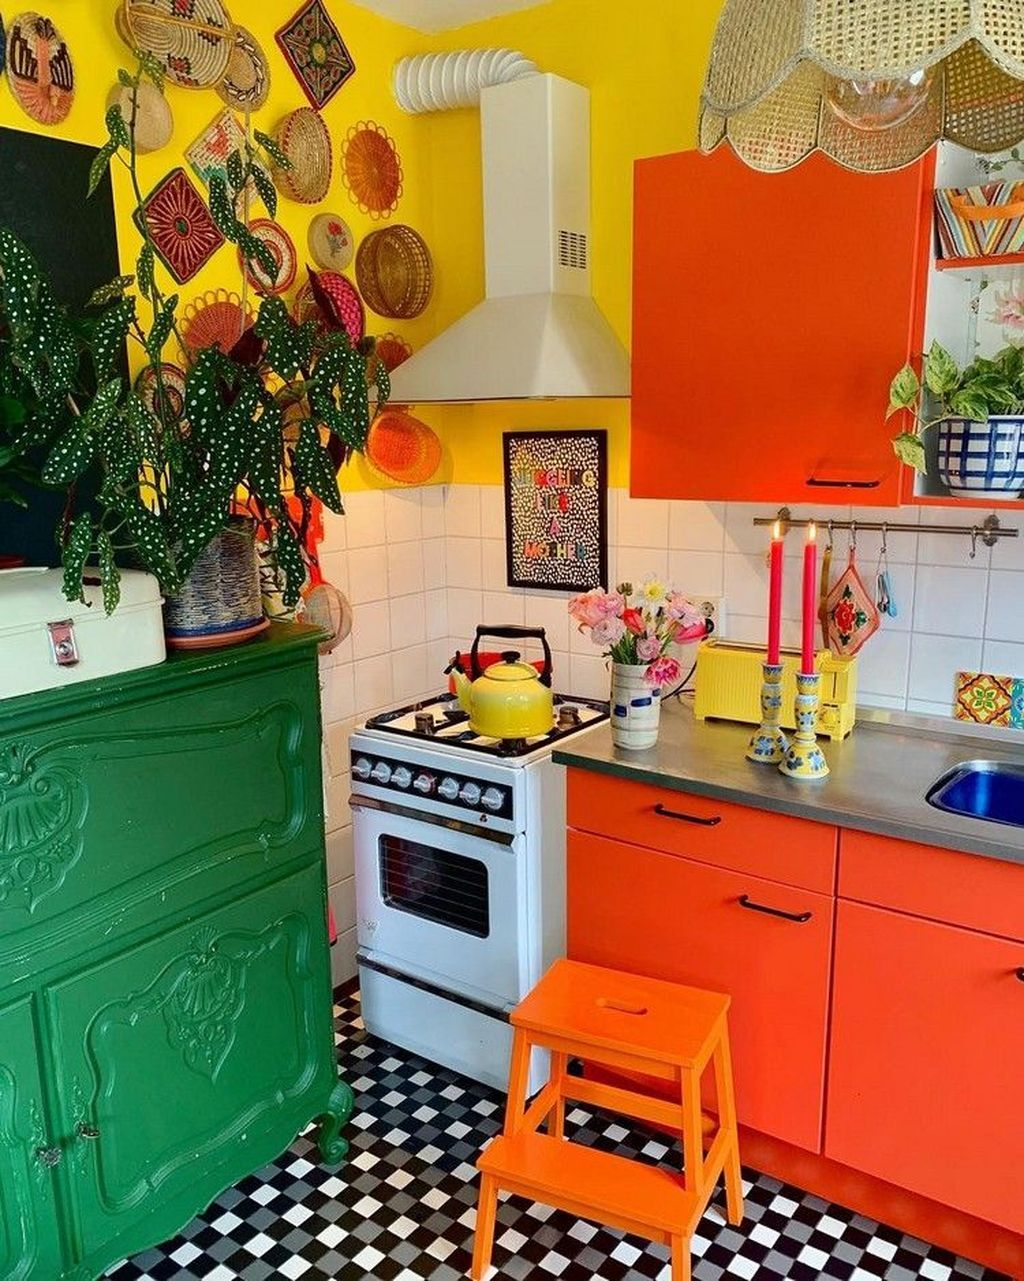 Pin By Jordan Cunningham On Apartment House Decorations In 2020 Bohemian Kitchen Boho Kitchen Quirky Kitchen